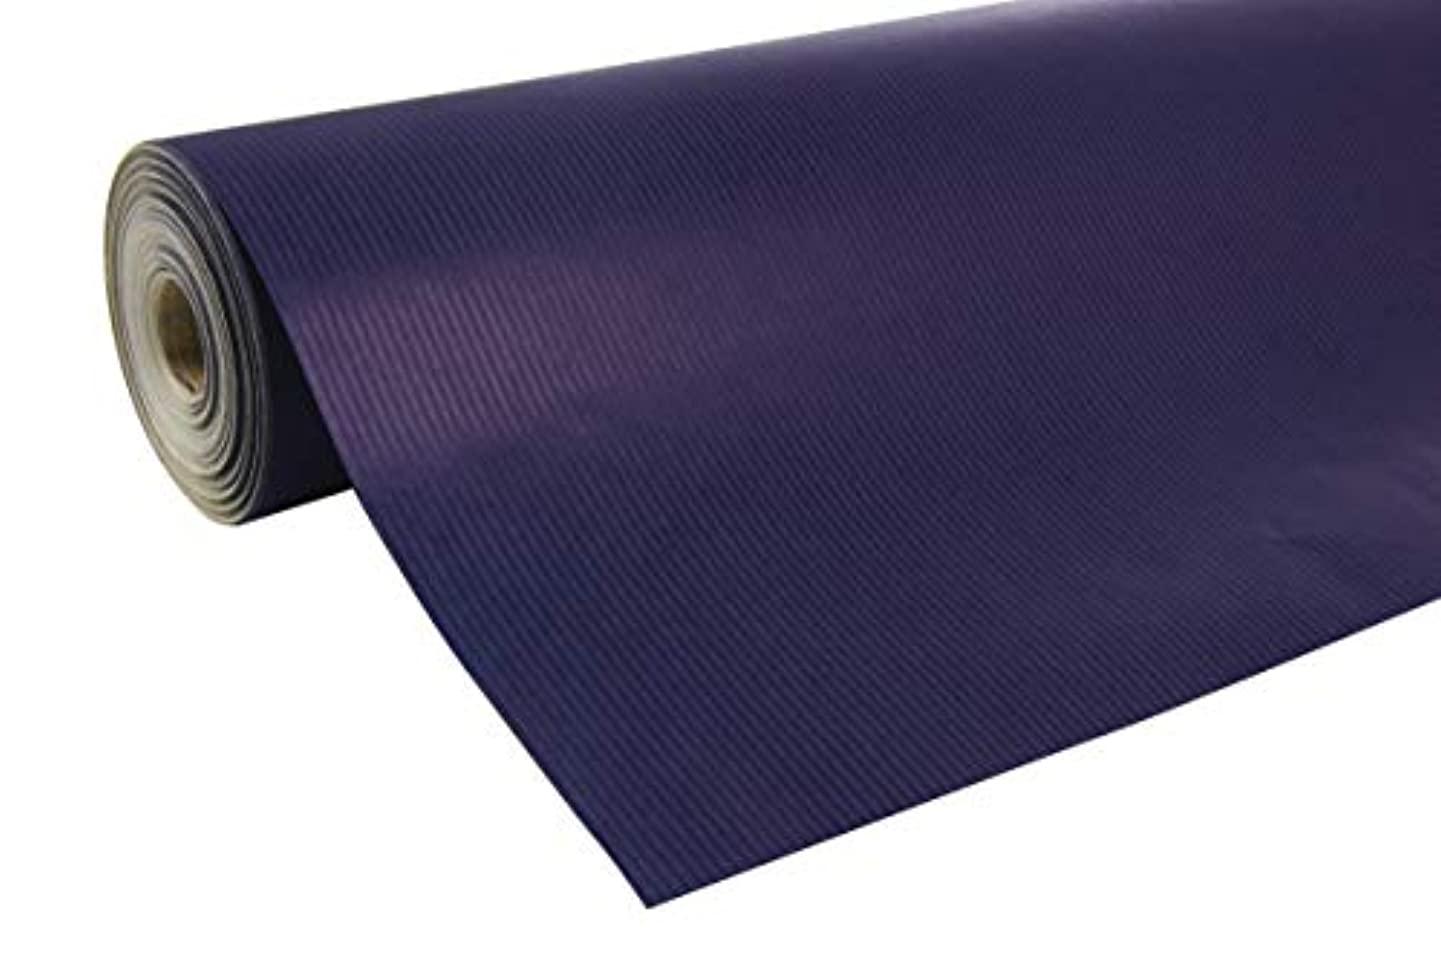 Clairefontaine 50x0.7m Unicolor Paper Roll - Royal Blue